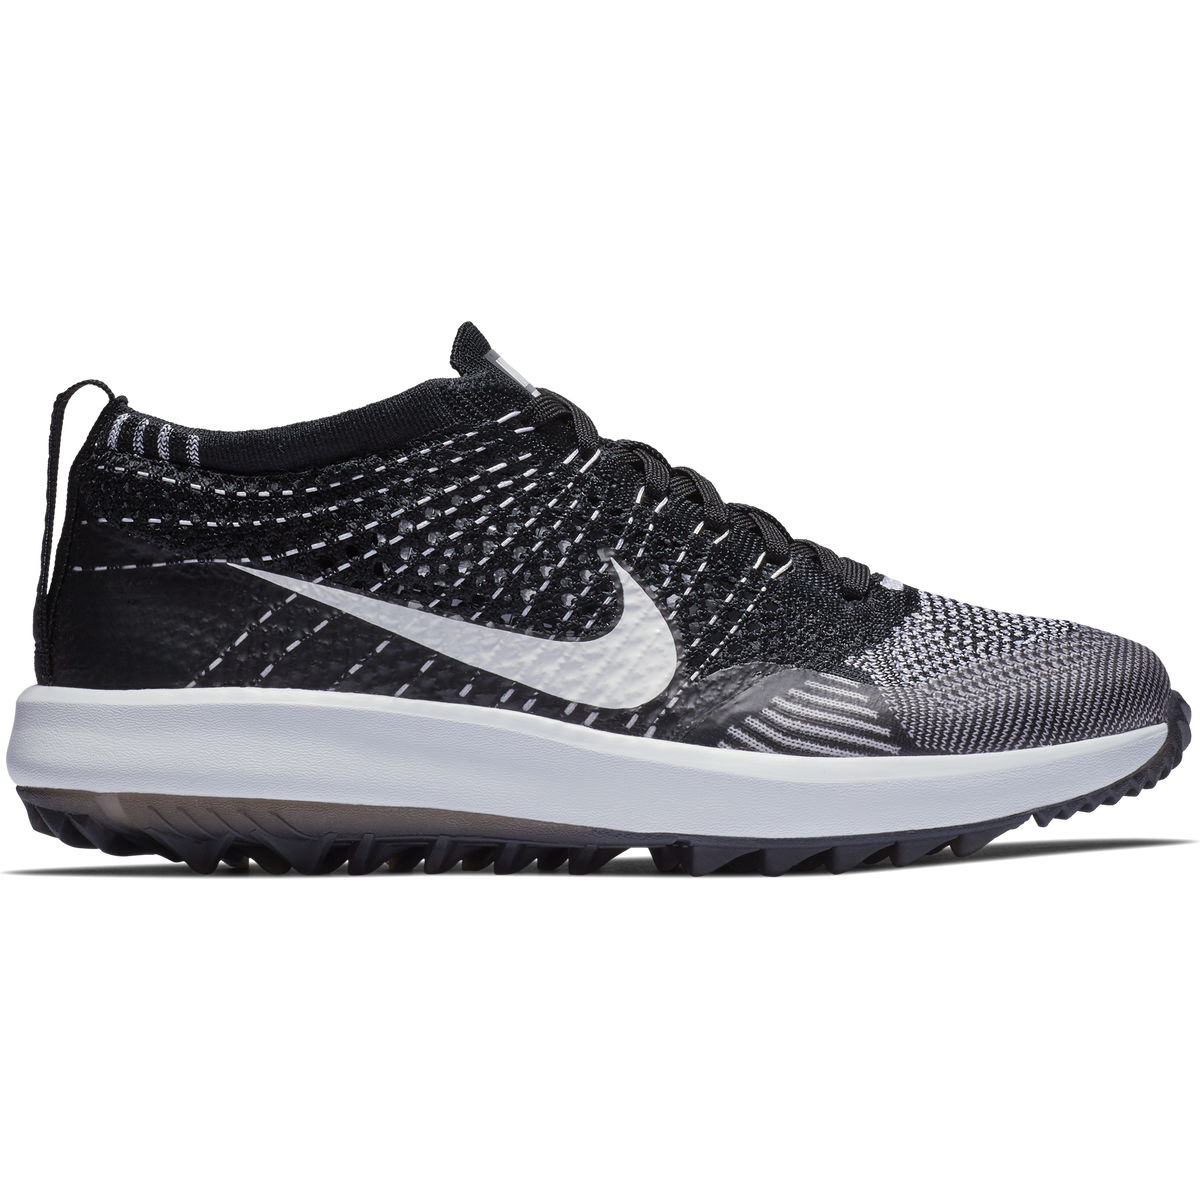 f68b3fa4115e Nike Flyknit Racer G Women s Golf Shoe - Black White